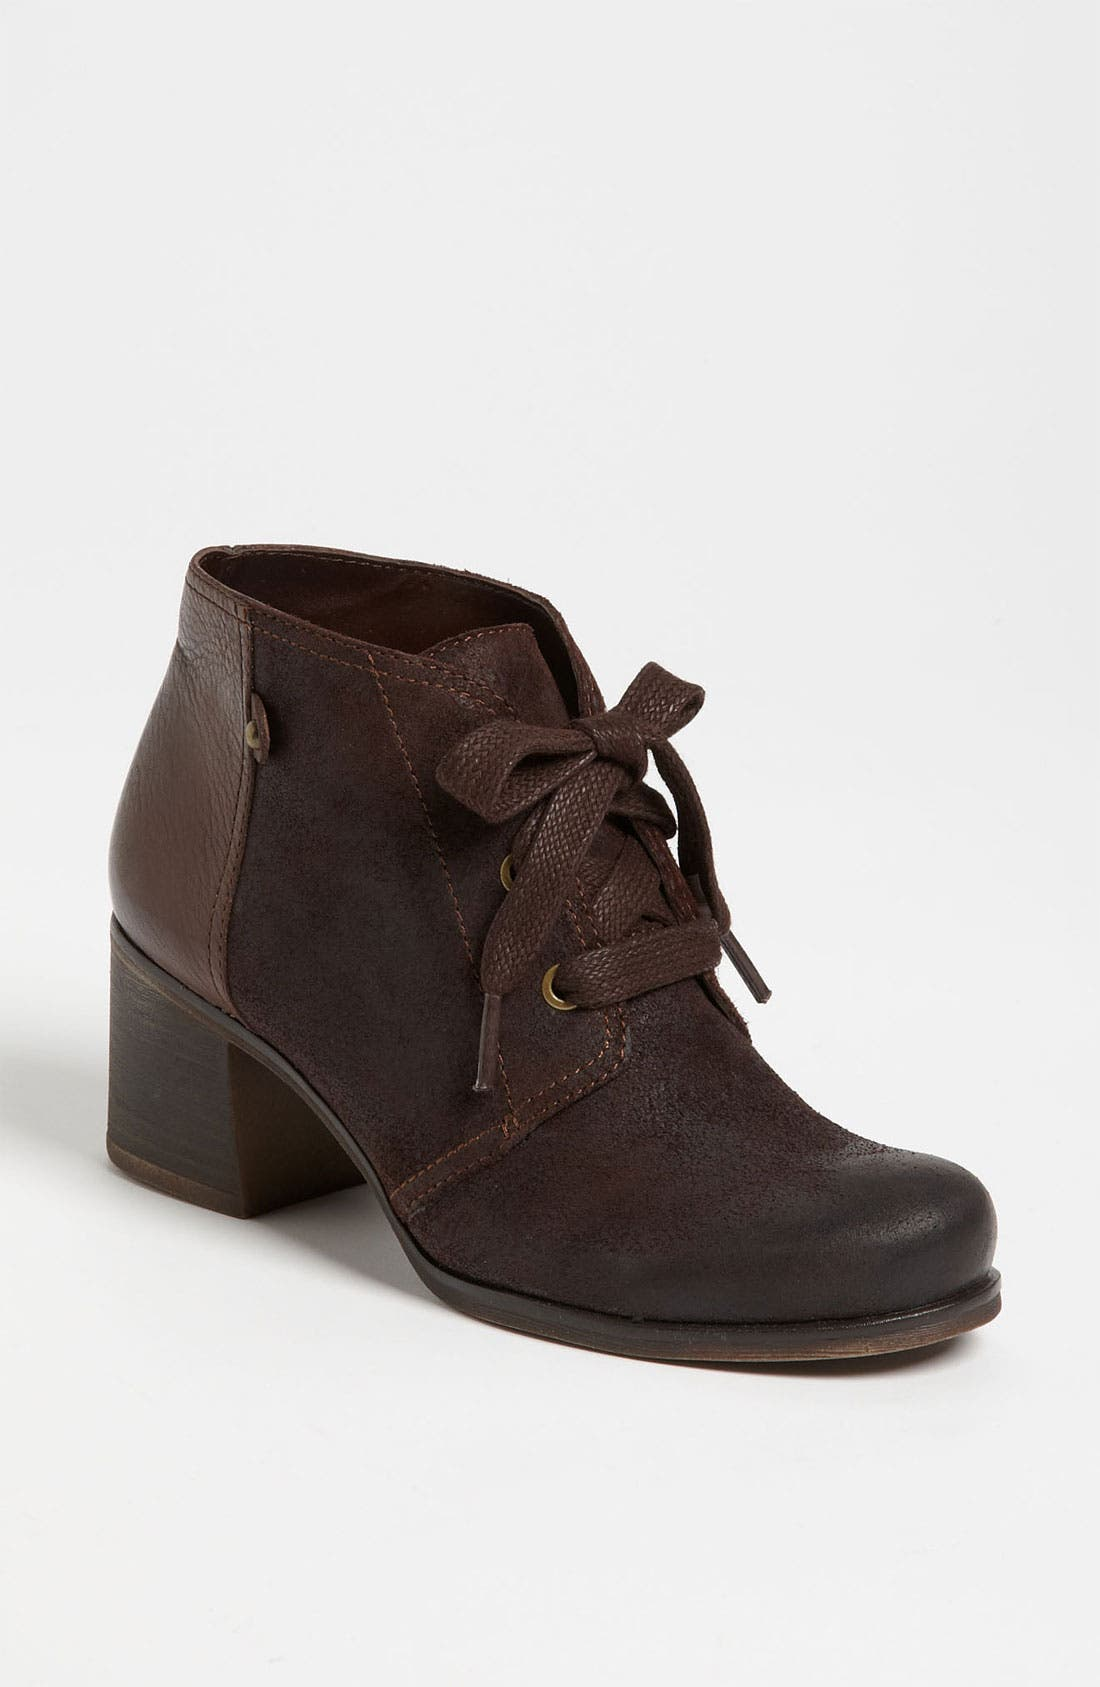 Main Image - Naturalizer 'Ranger' Ankle Boot